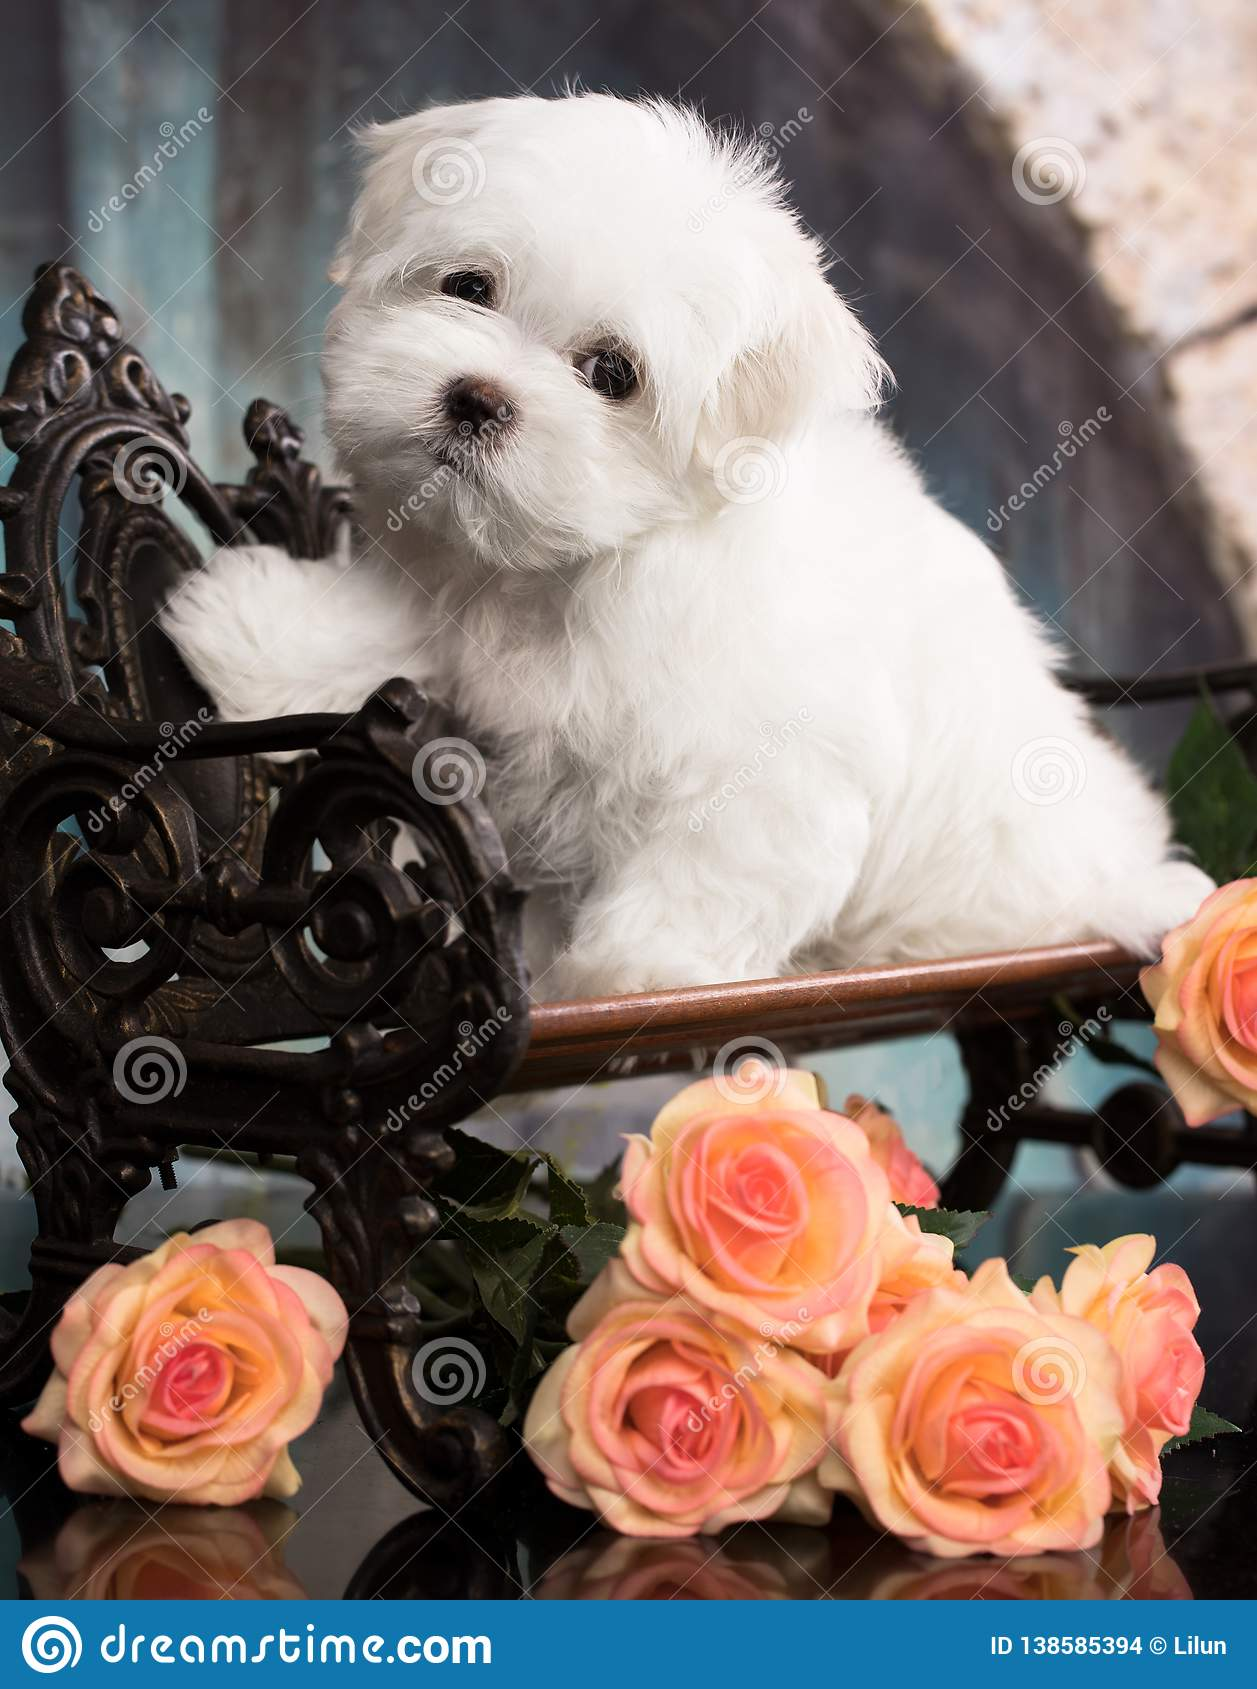 Maltese puppy sits on dark background. Studio shoot.